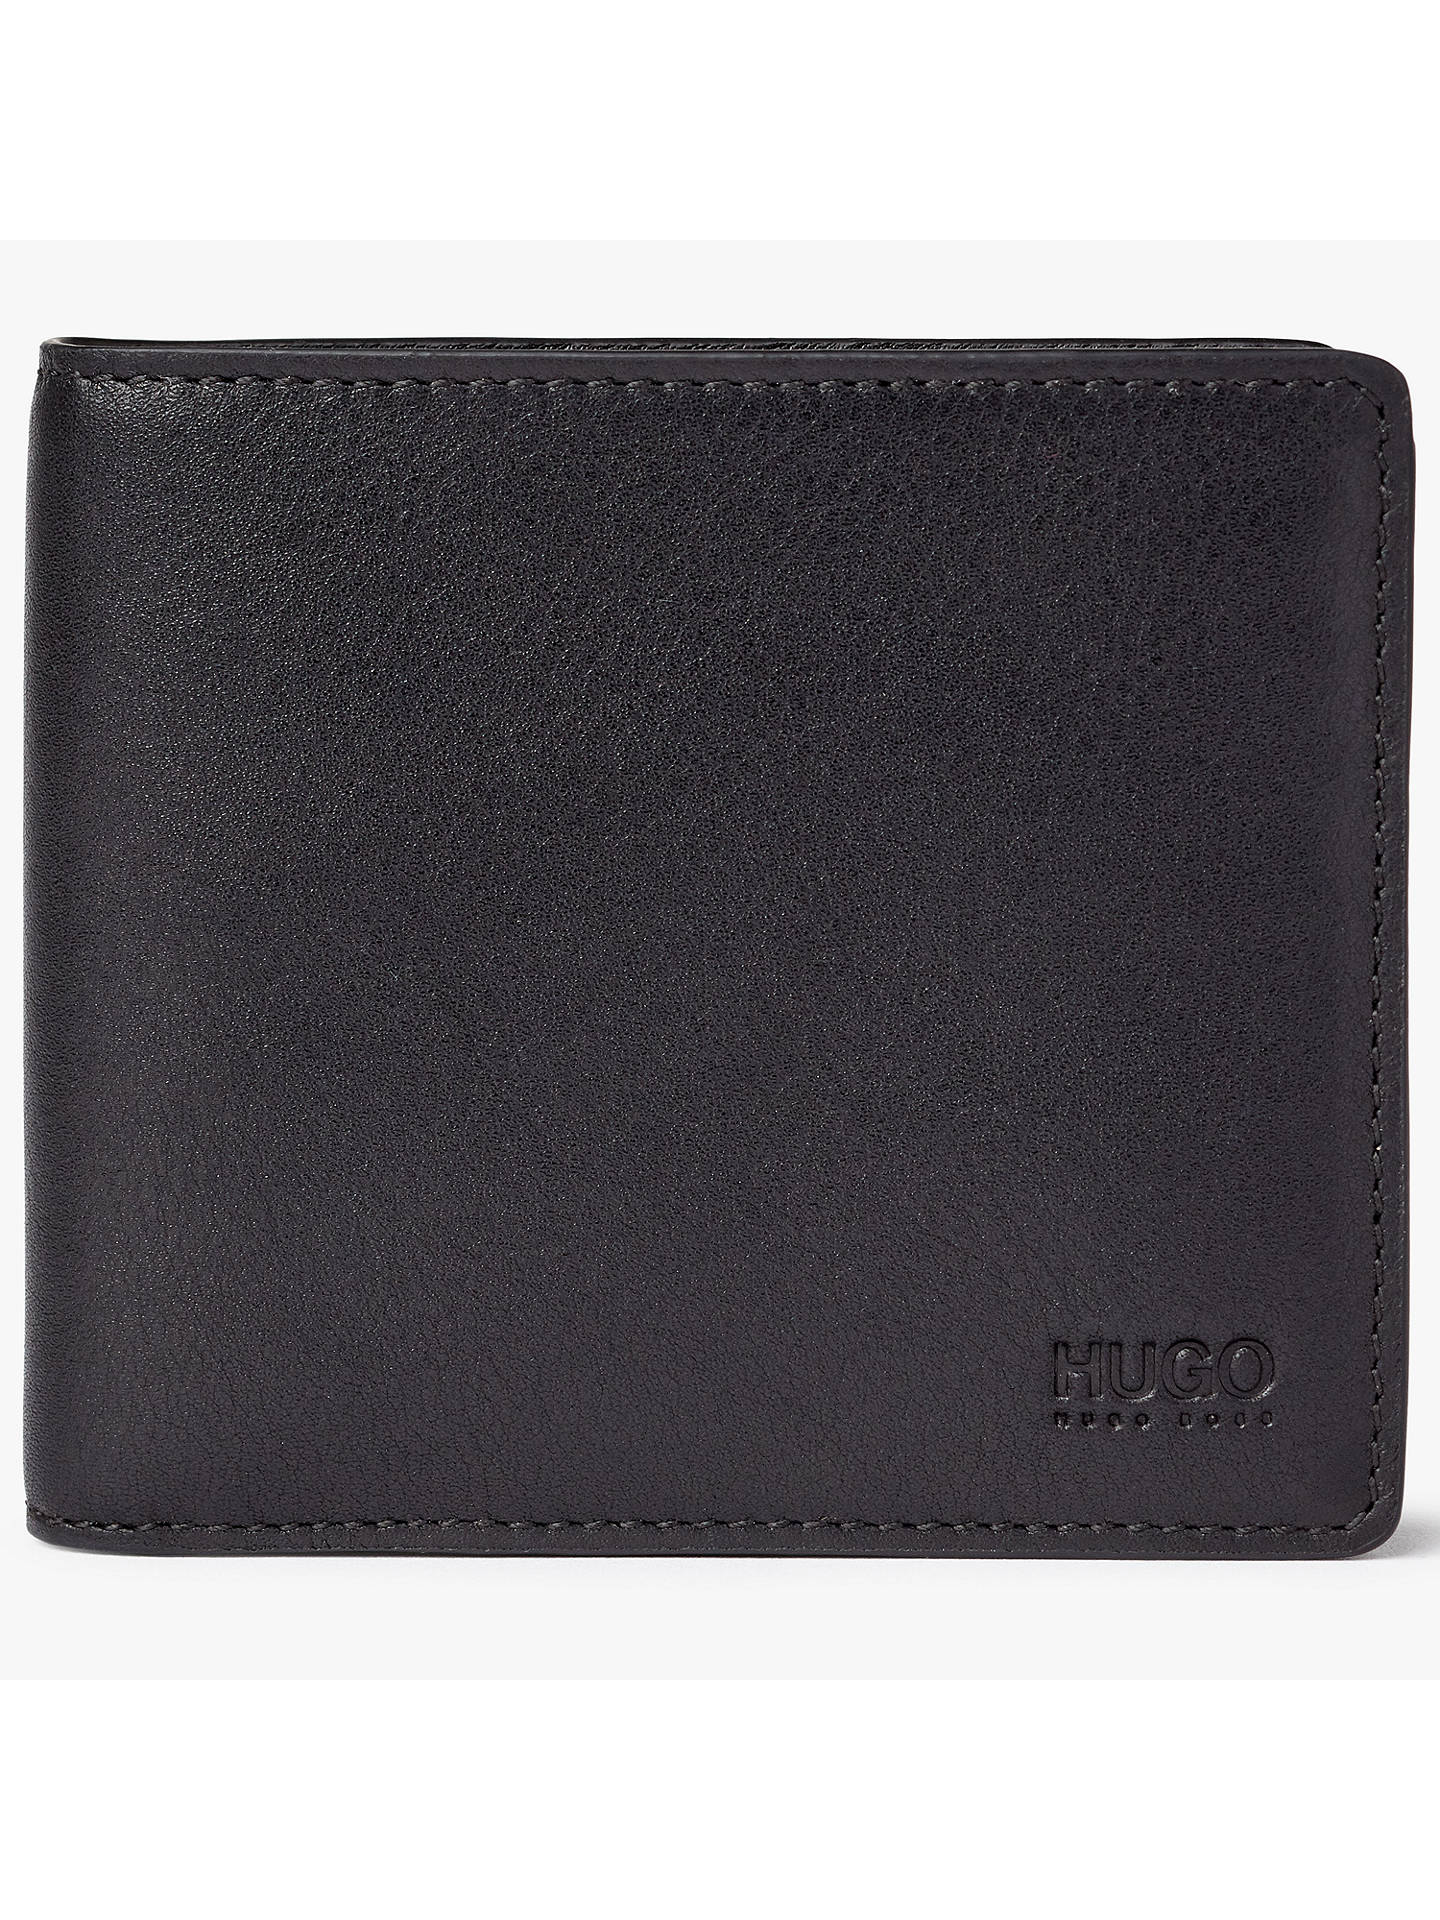 557c6505ffe Buy HUGO by Hugo Boss Subway 8 Card Leather Wallet, Red/Black Online at ...